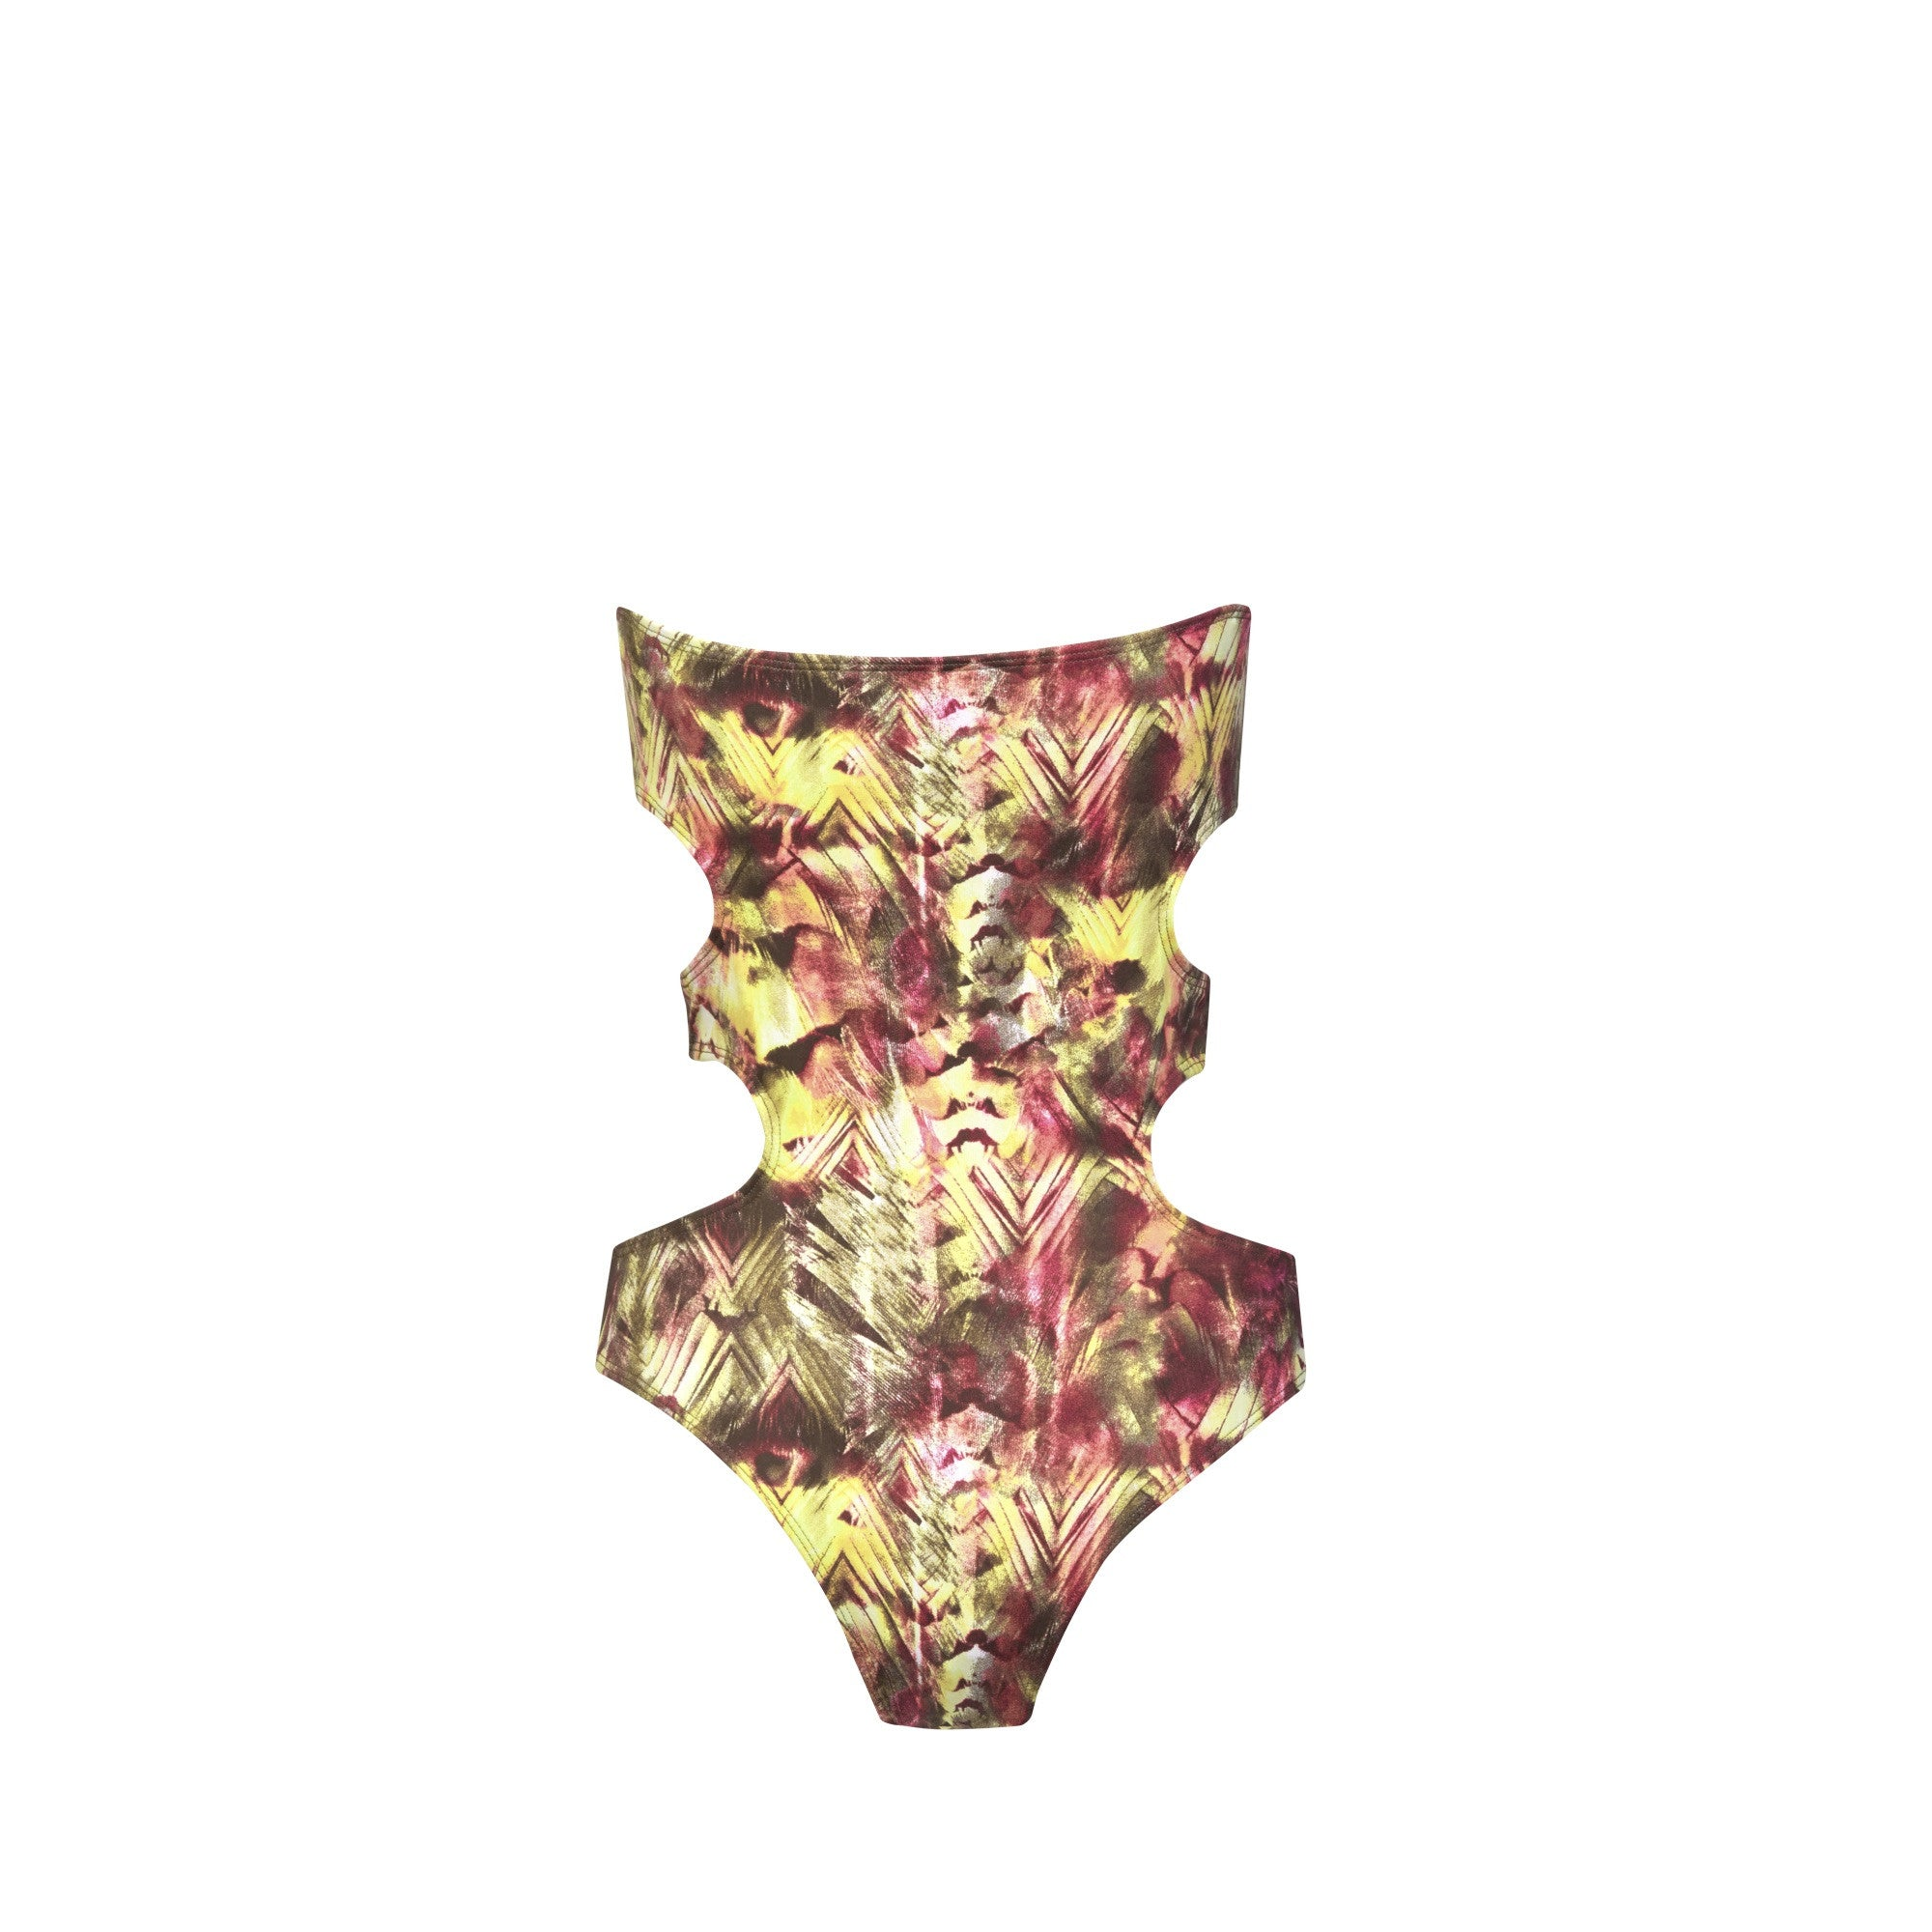 Dunes One Piece Swimsuit in Desert Lizard - Tuhkana